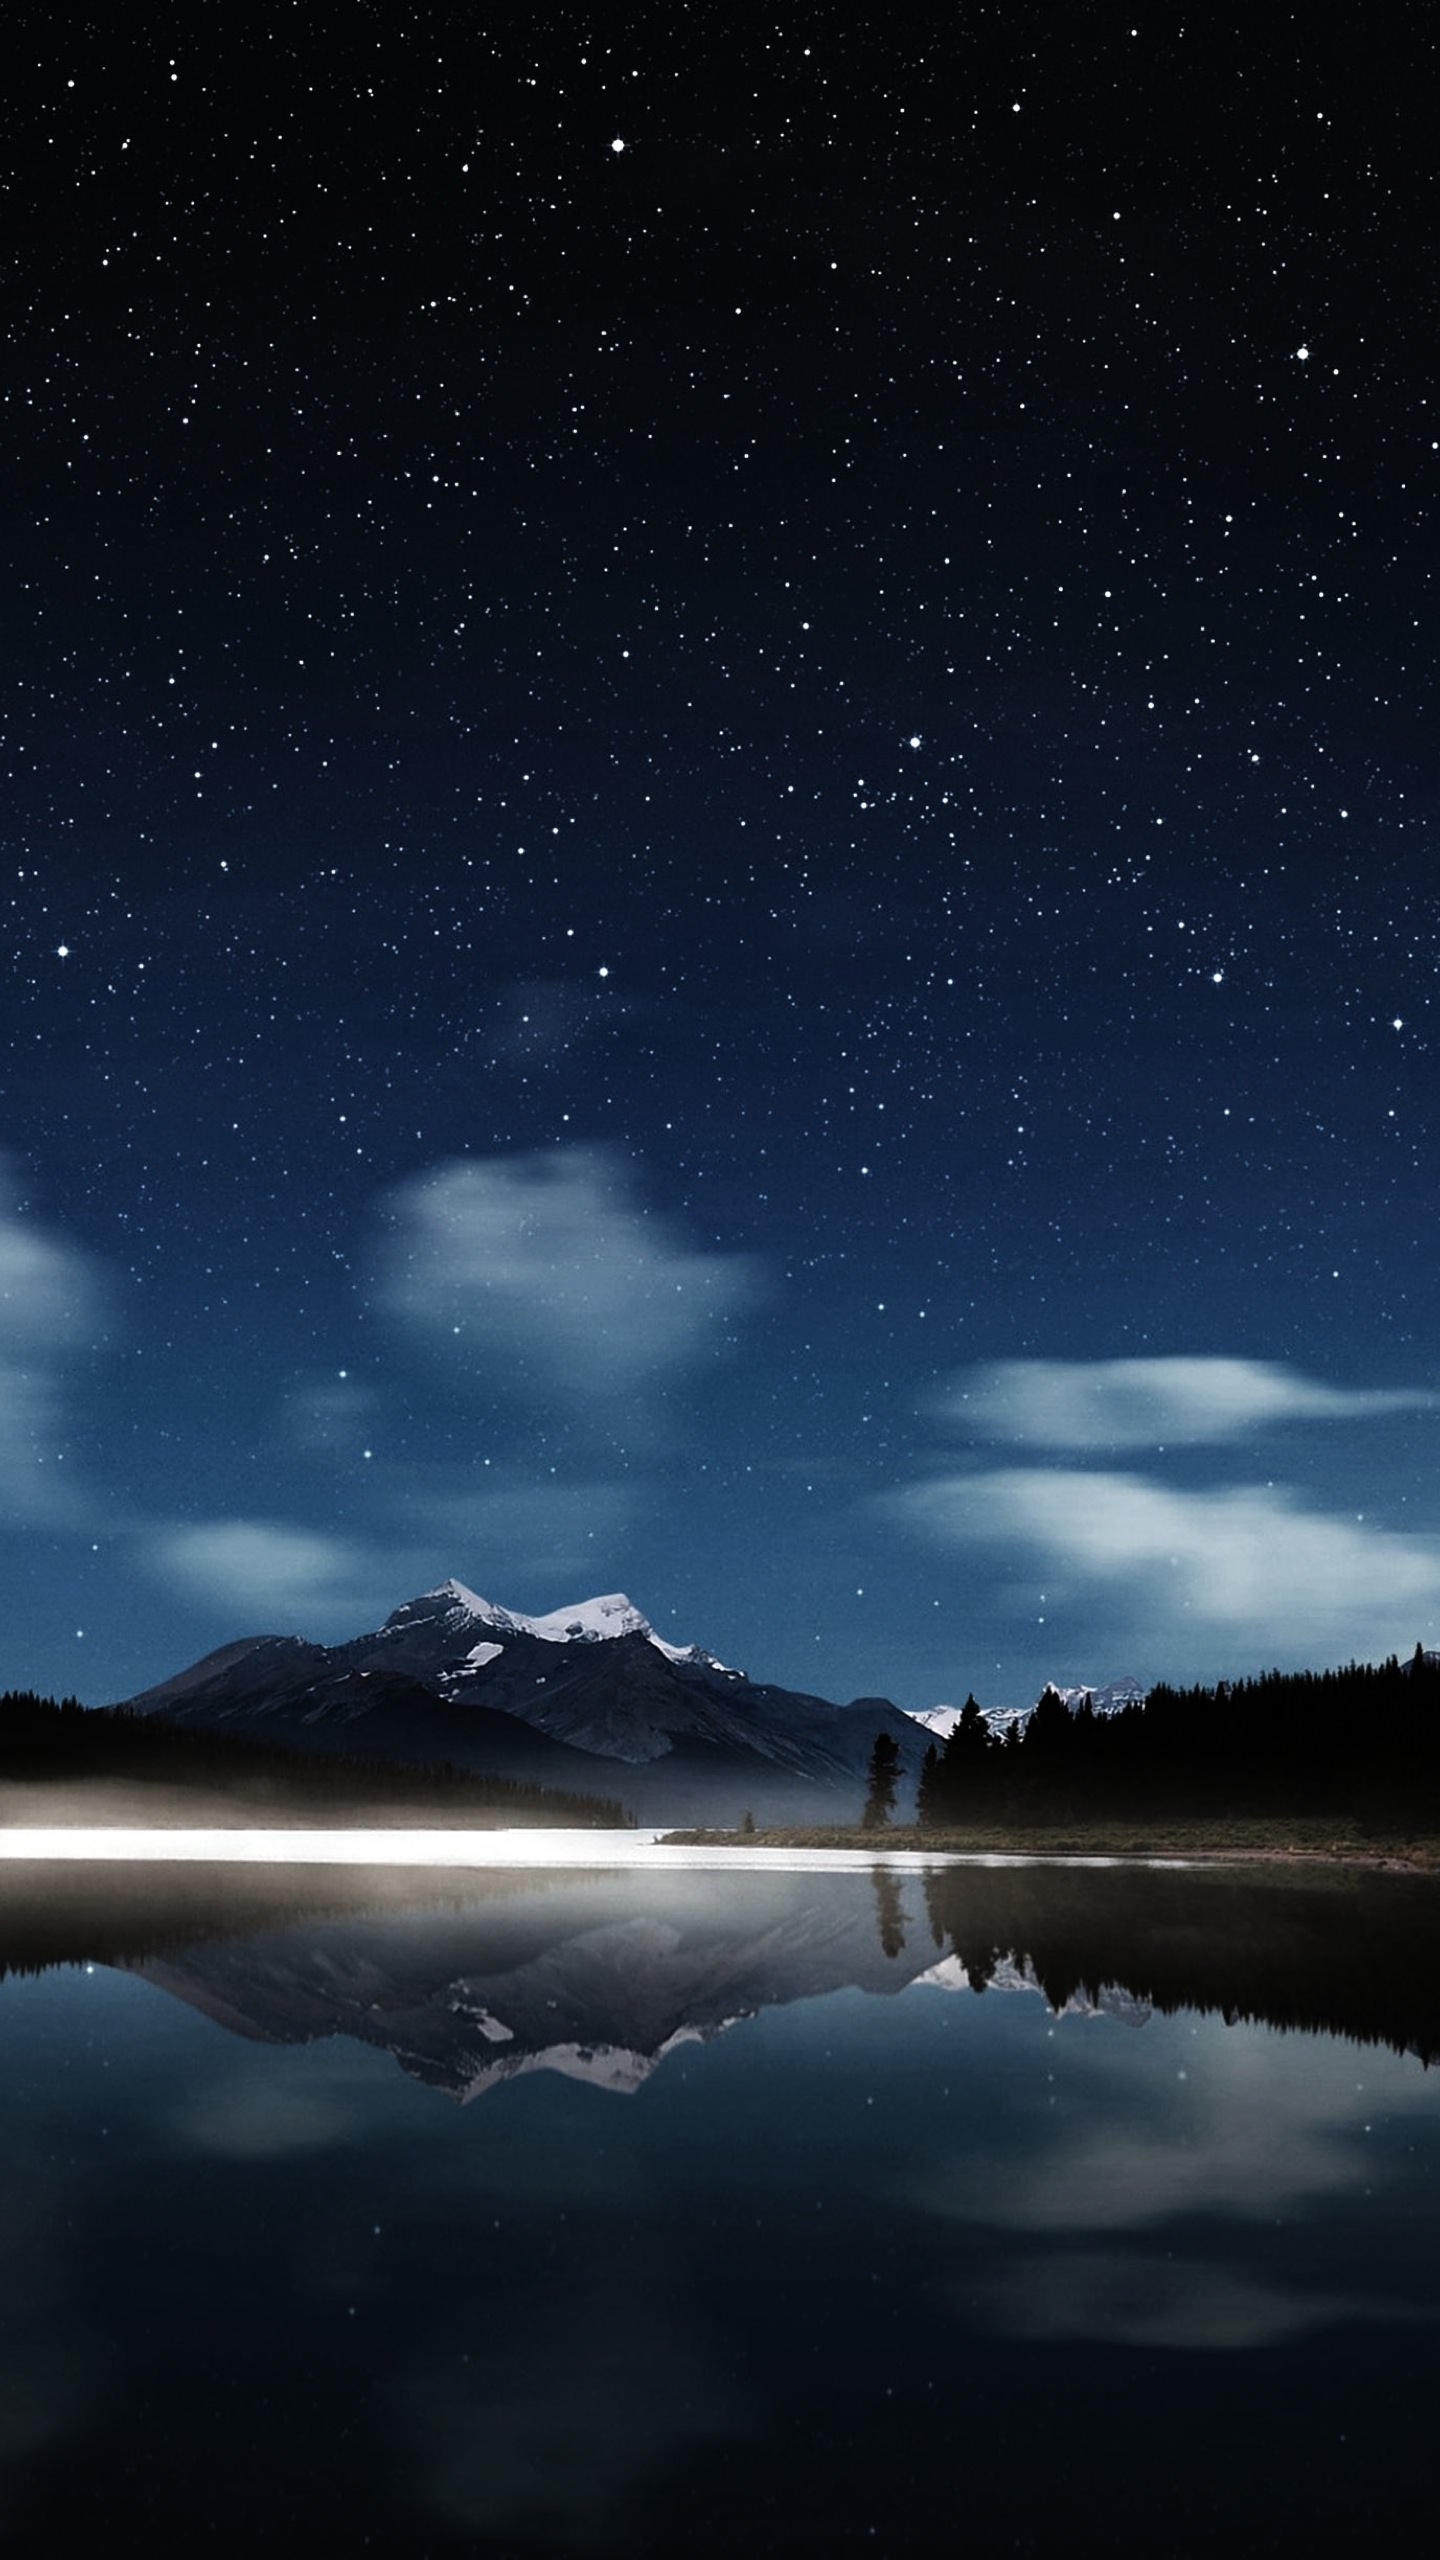 Landscape night smartphone - Anime wallpaper hd for android phones ...